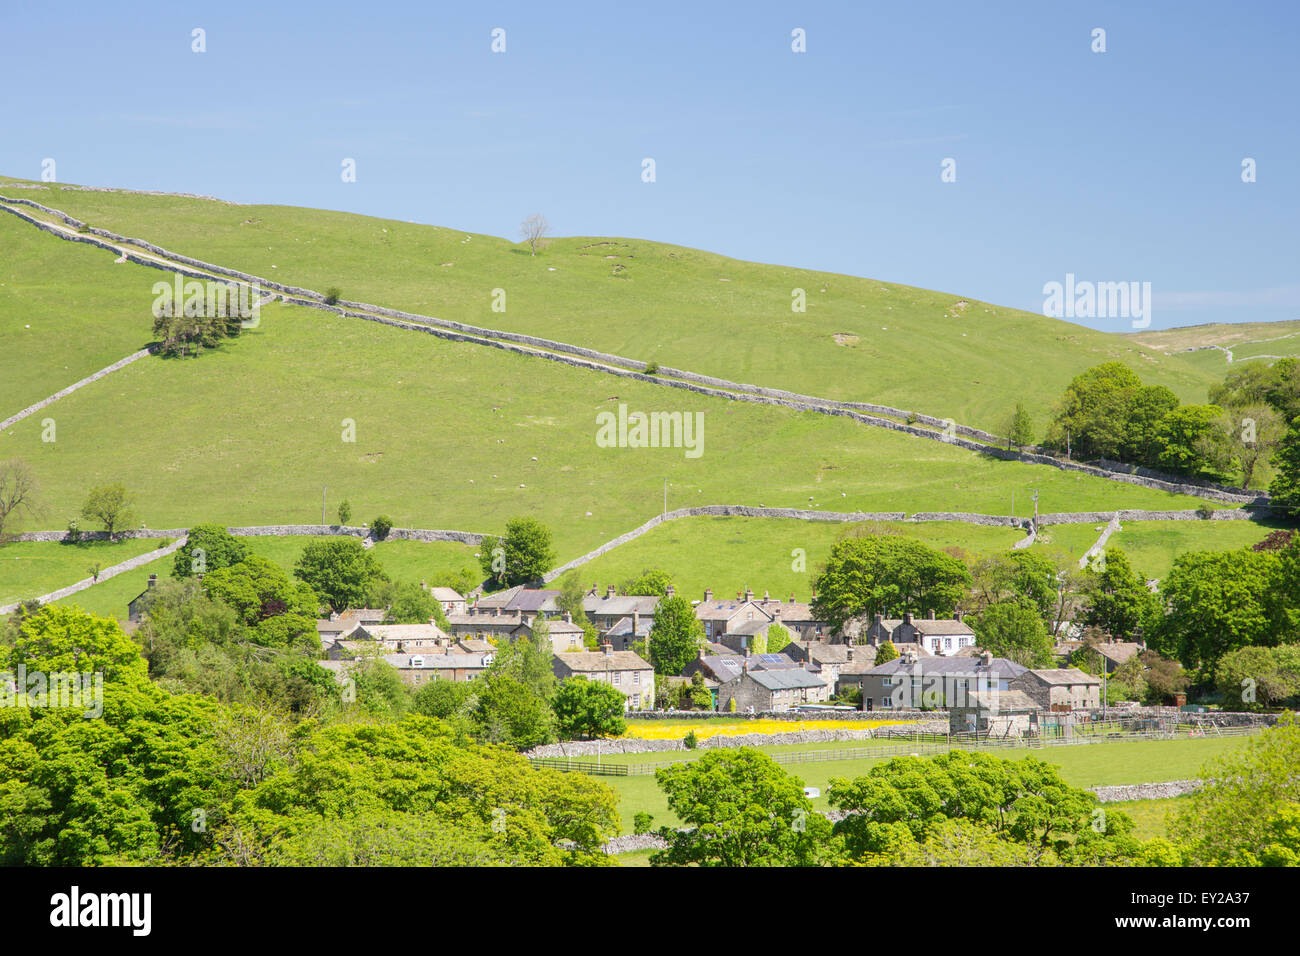 The village of Kettlewell in Wharfdale, Yorkshire Dales National Park, North Yorkshire, England, UK - Stock Image